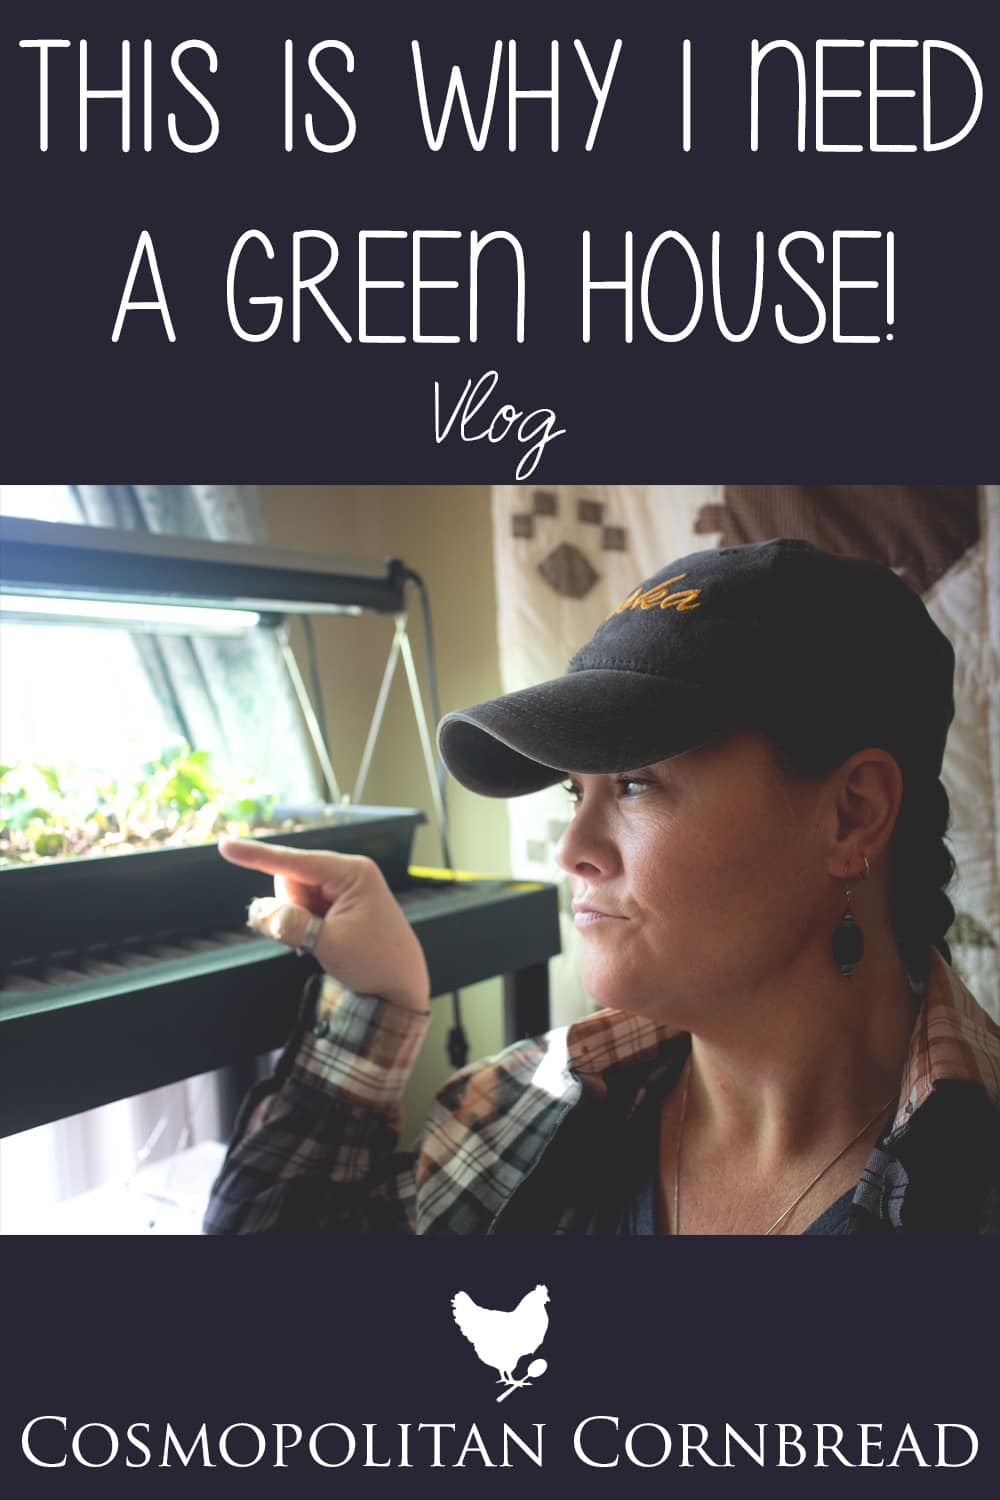 Today I shared a few tips about starting seeds, what works for me, and the reasons I have GOT to get the green house built this year!